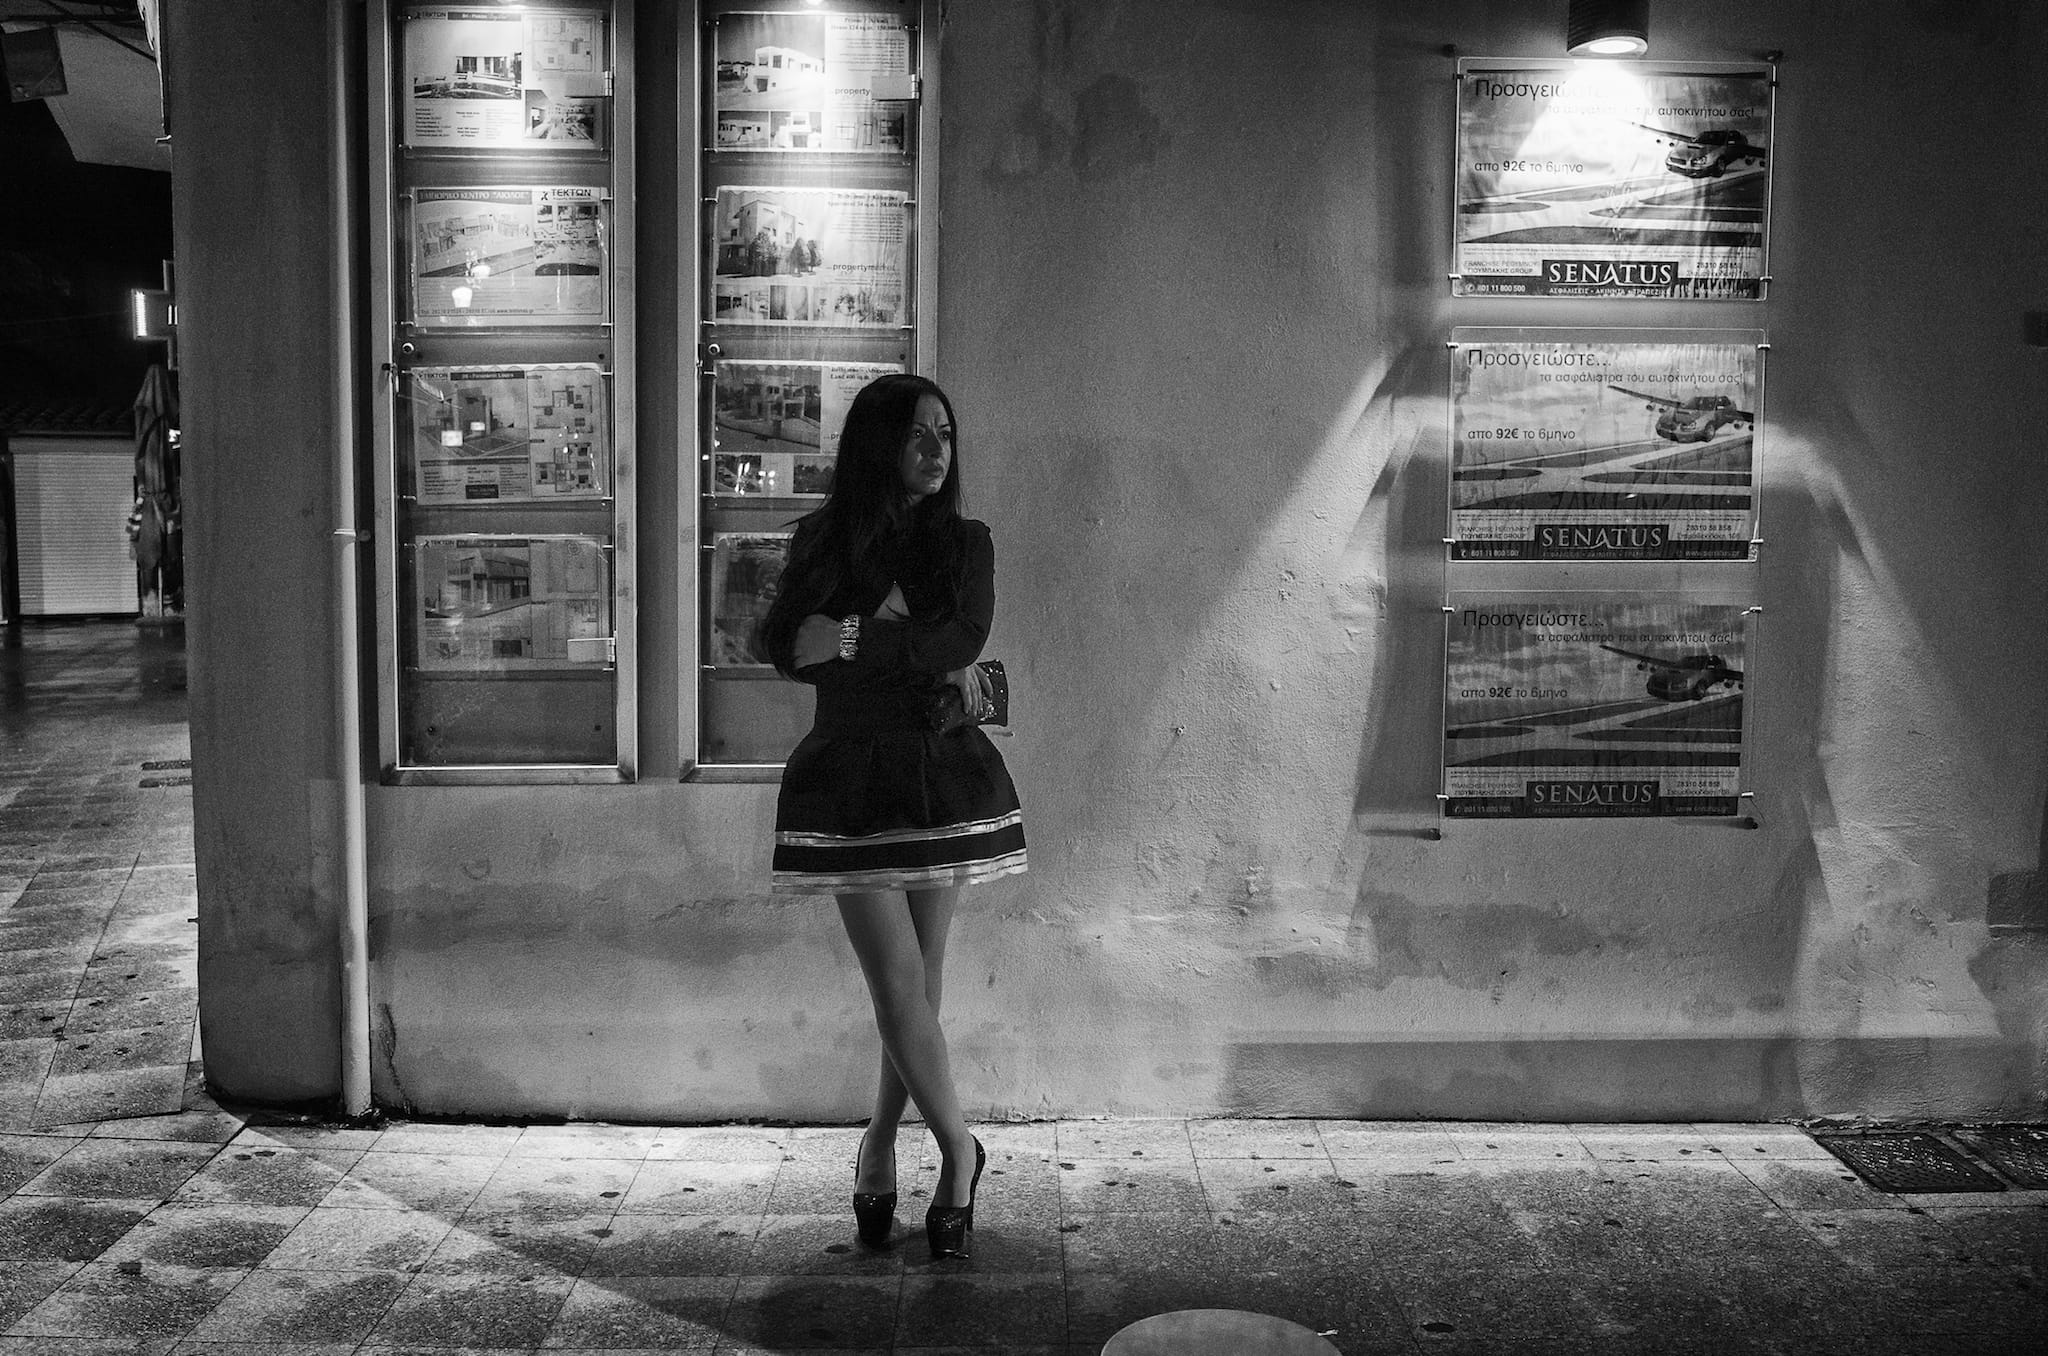 """Date Night"" by Spyros Papaspyropoulos Shot in Rethymno, Crete, Greece. January 2015"